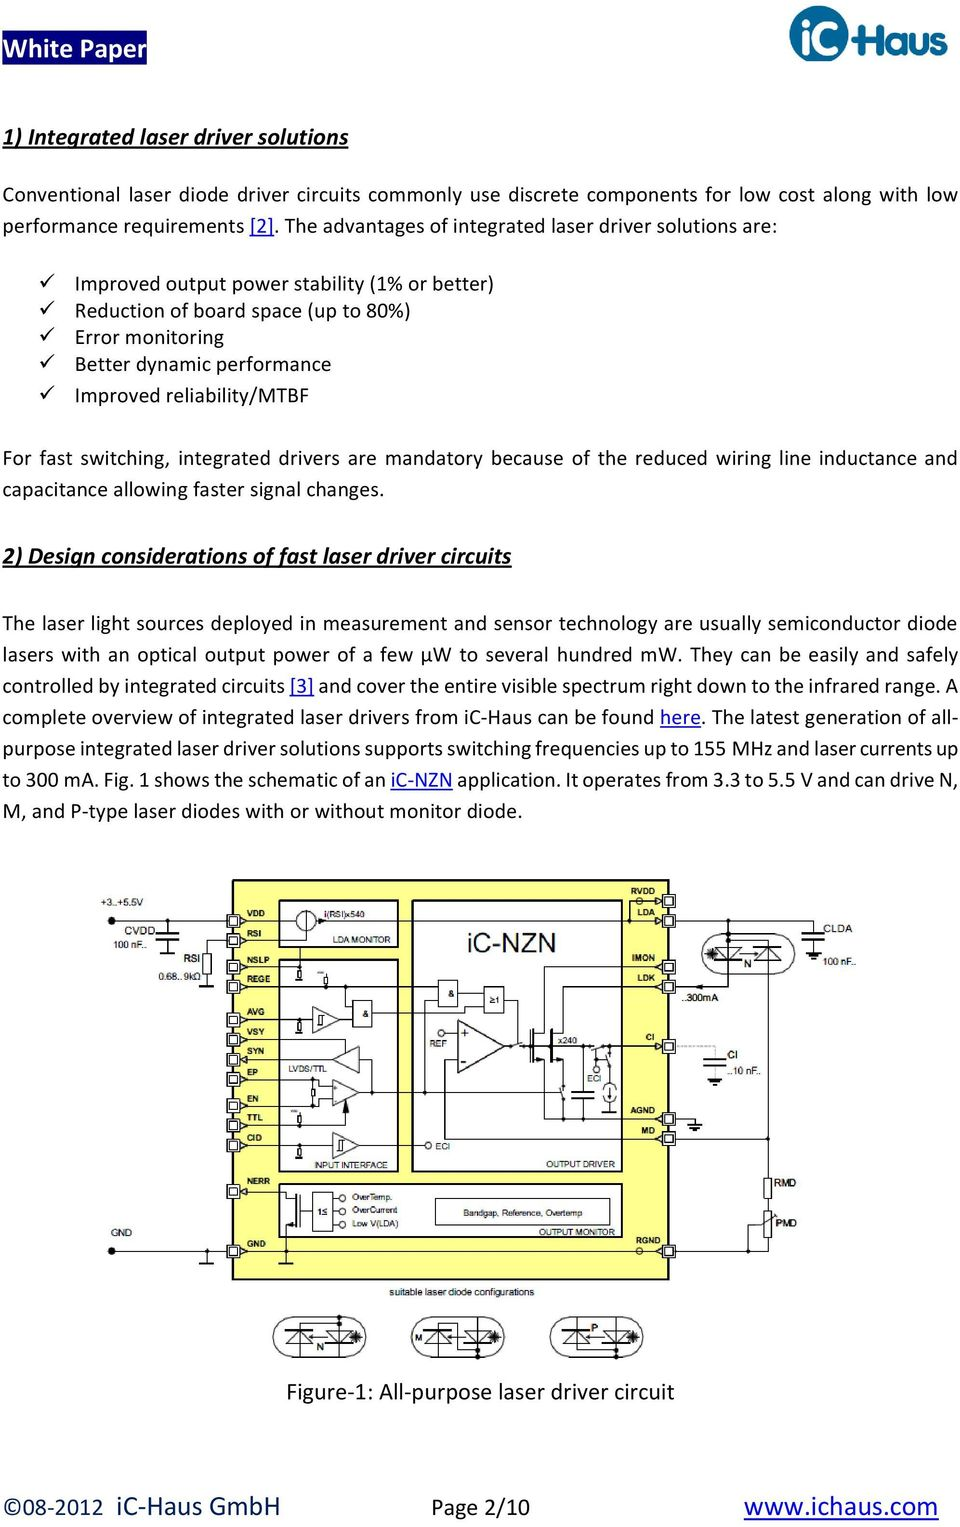 Design And Test Of Fast Laser Driver Circuits Pdf Diode Circuit 1 Reliability Mtbf For Switching Integrated Drivers Are Mandatory Because The Reduced Wiring